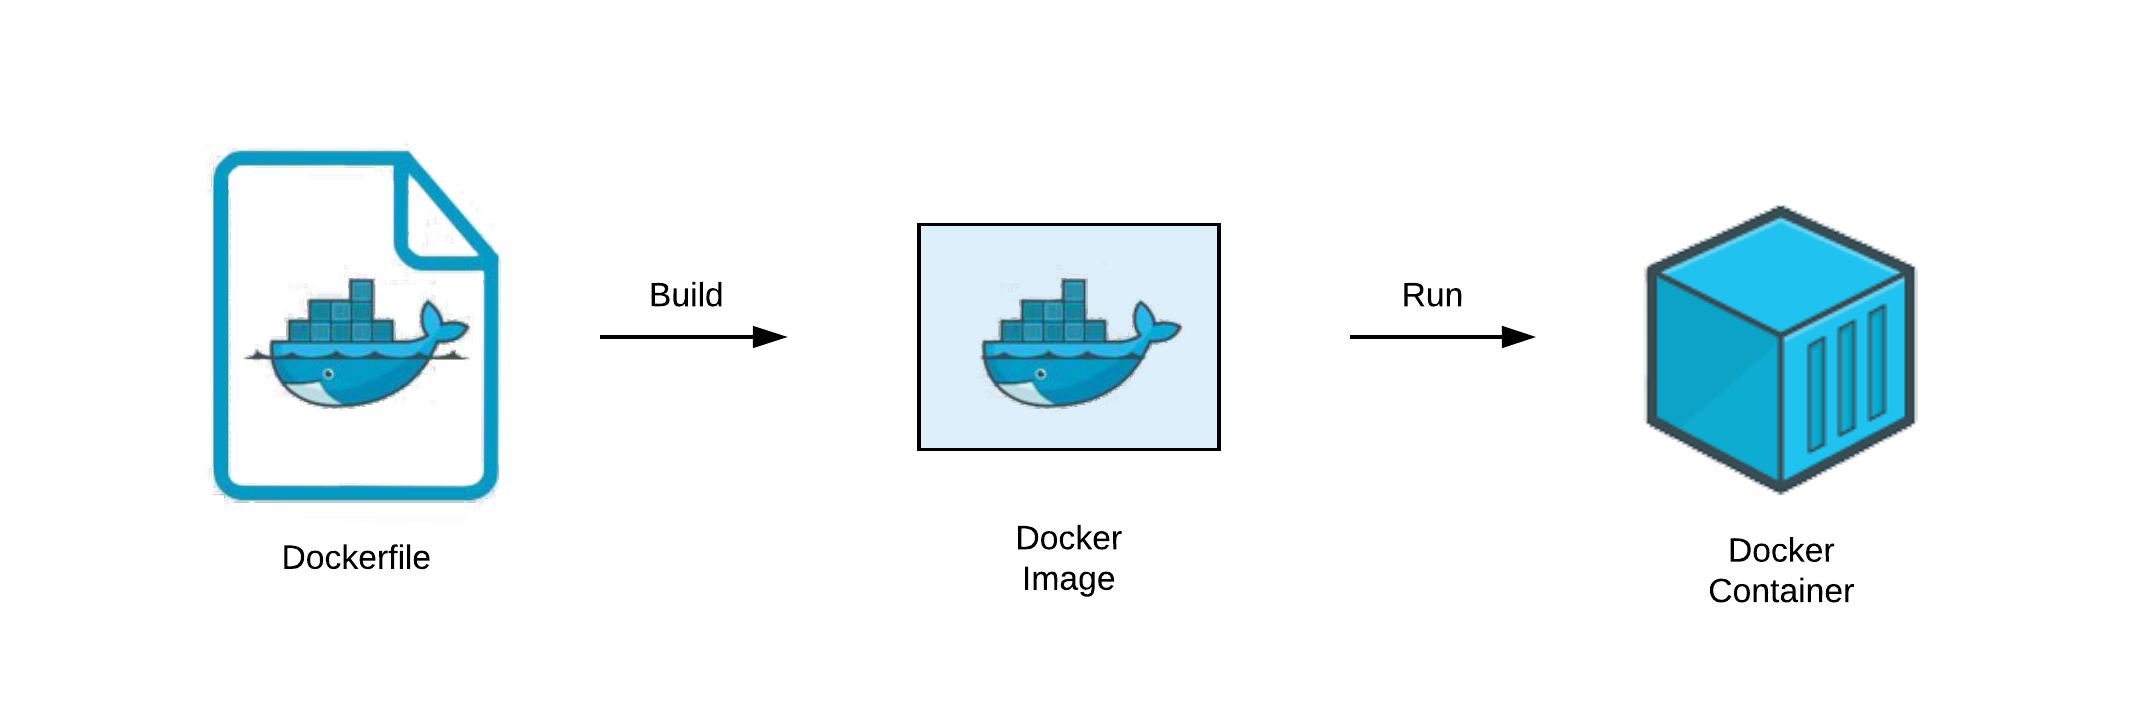 Understand Dockerfile. Dockerfile is the basic concept for… | by Rocky Chen | The Startup | Medium